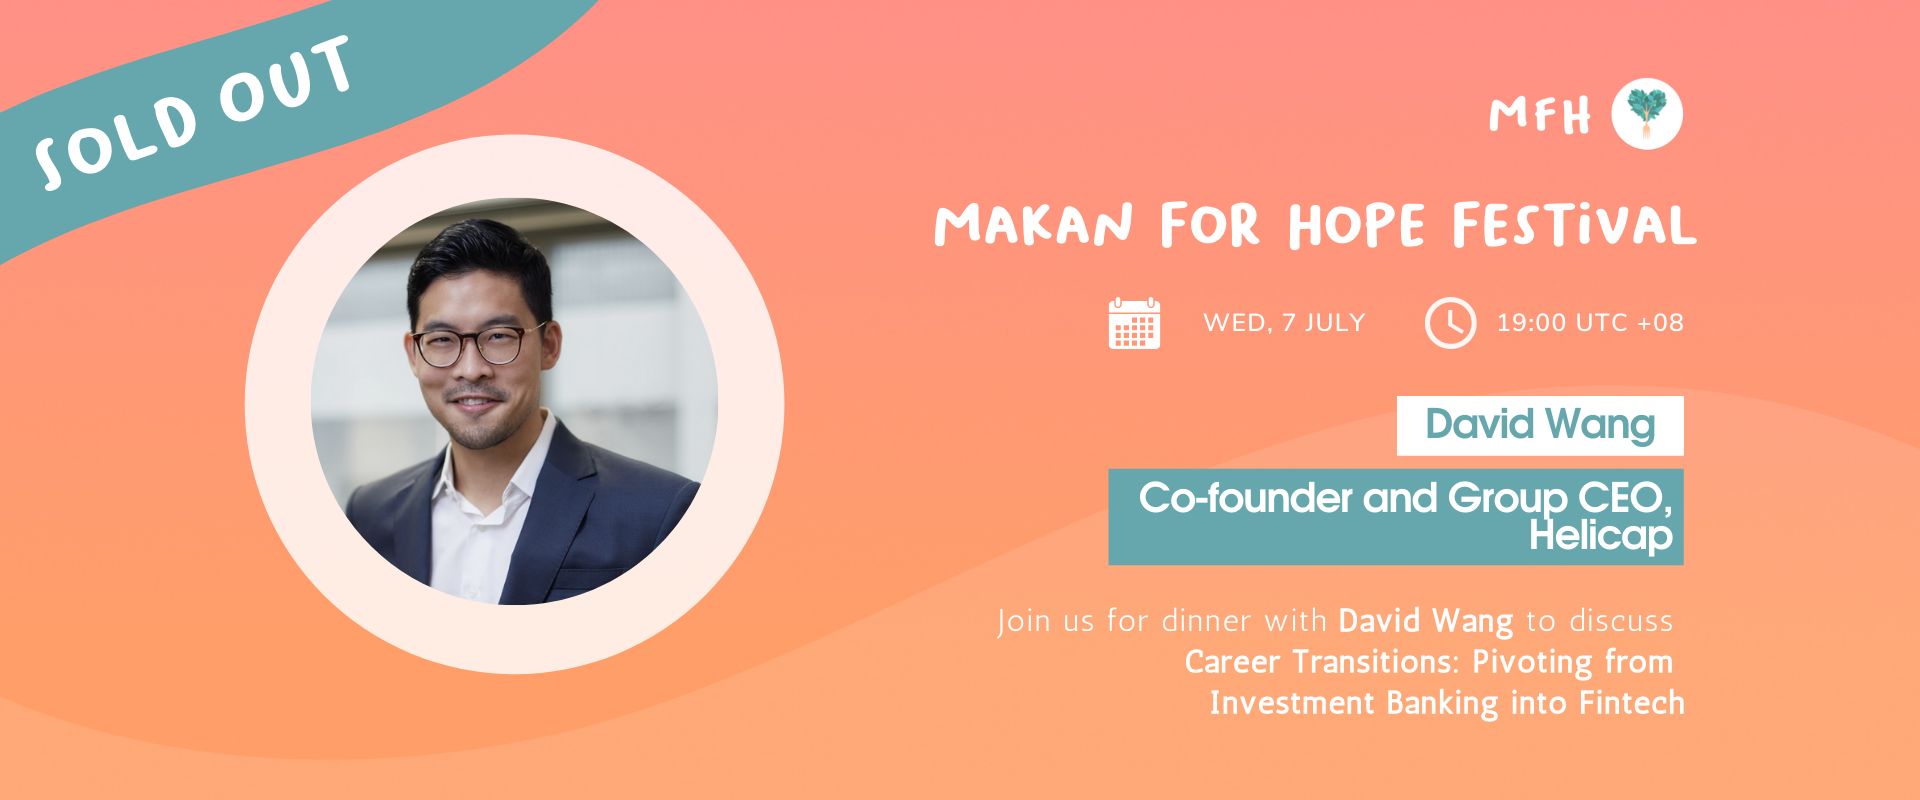 [SOLD OUT!] David Z Wang - Career Transitions: Pivoting from Investment Banking into Fintech Banner Image